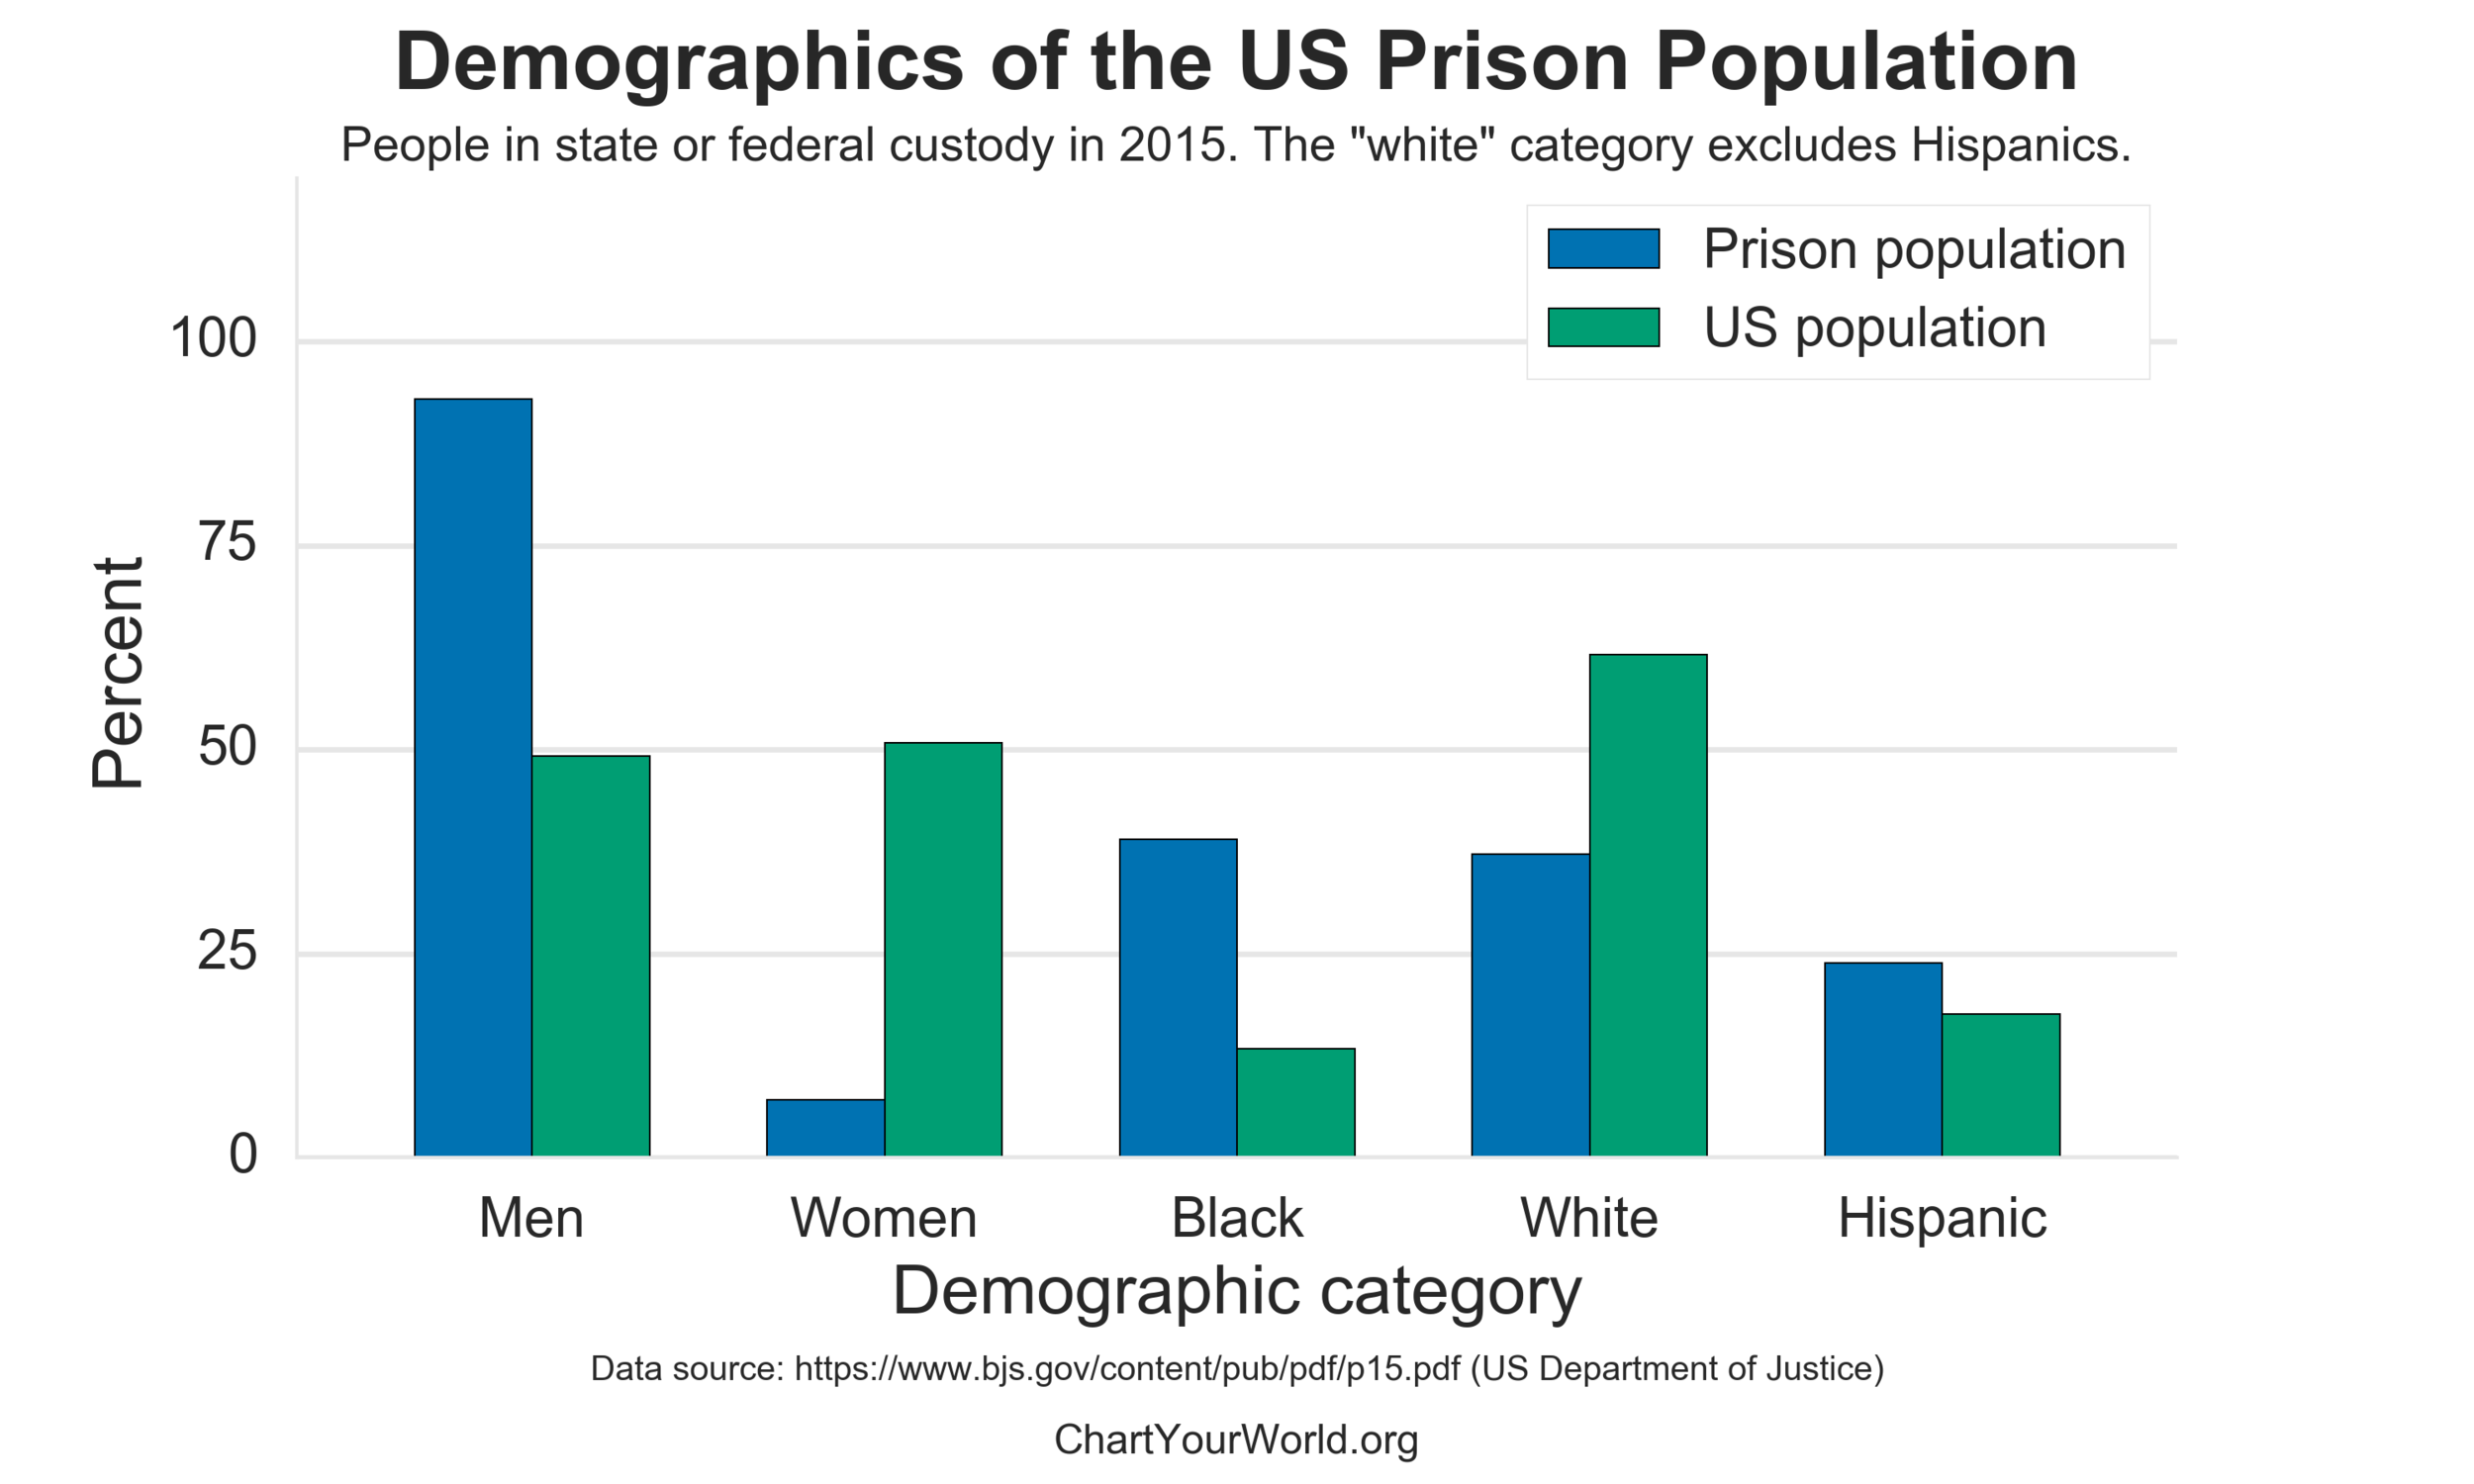 us_prisoners_by_demographic.png